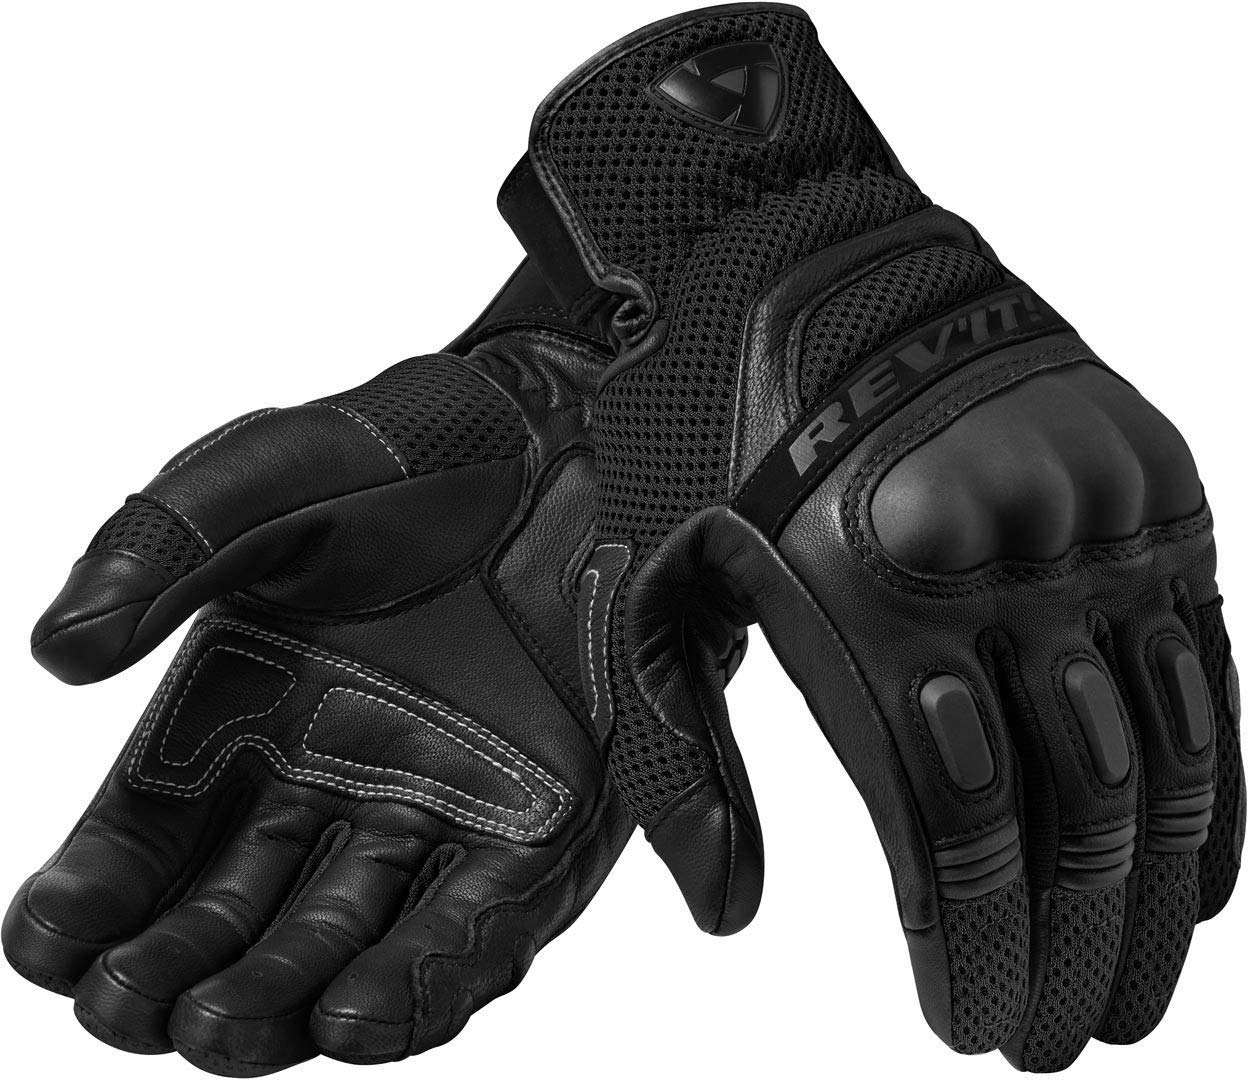 FGS139-1010-L Rev It Dirt 3 Leather Motorcycle Gloves L Black